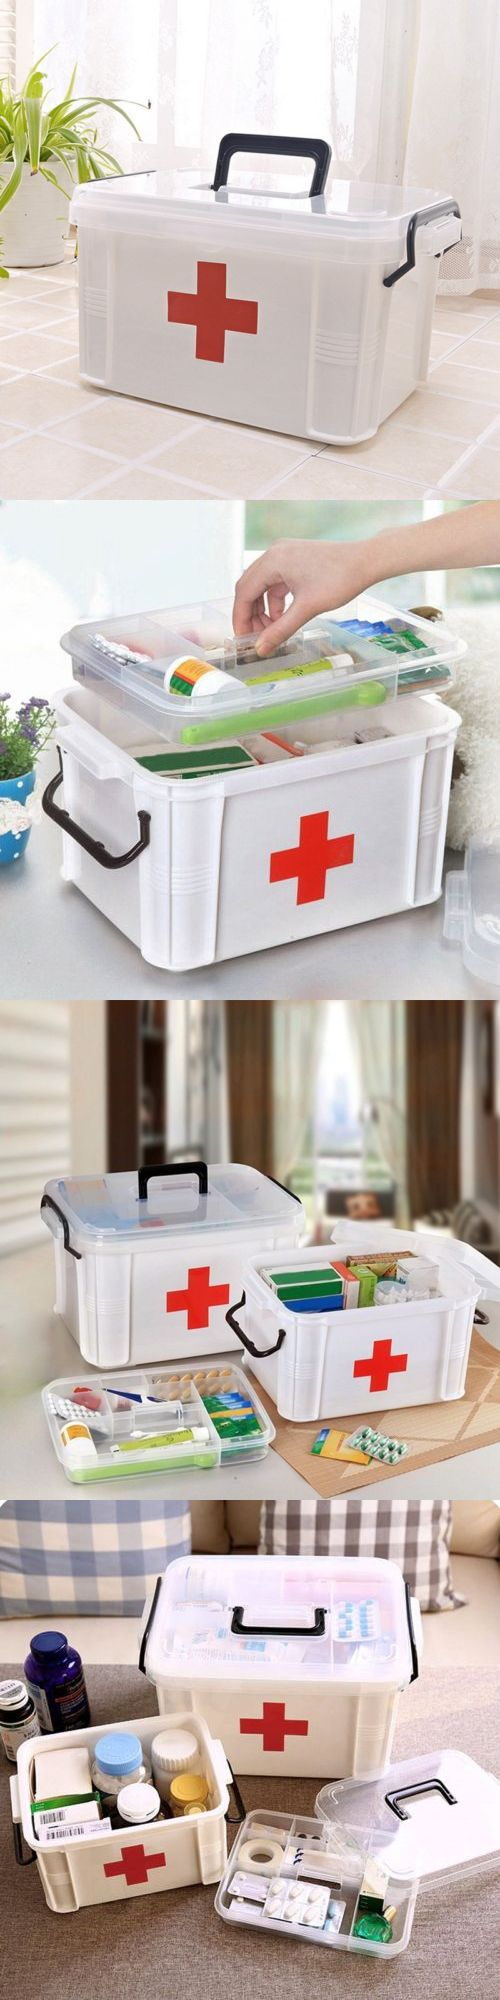 Kits and Bags: Home First Aid Kit Multiuse Emergency Medicine Box Drug Storage Case Organizer -> BUY IT NOW ONLY: $30.42 on eBay!